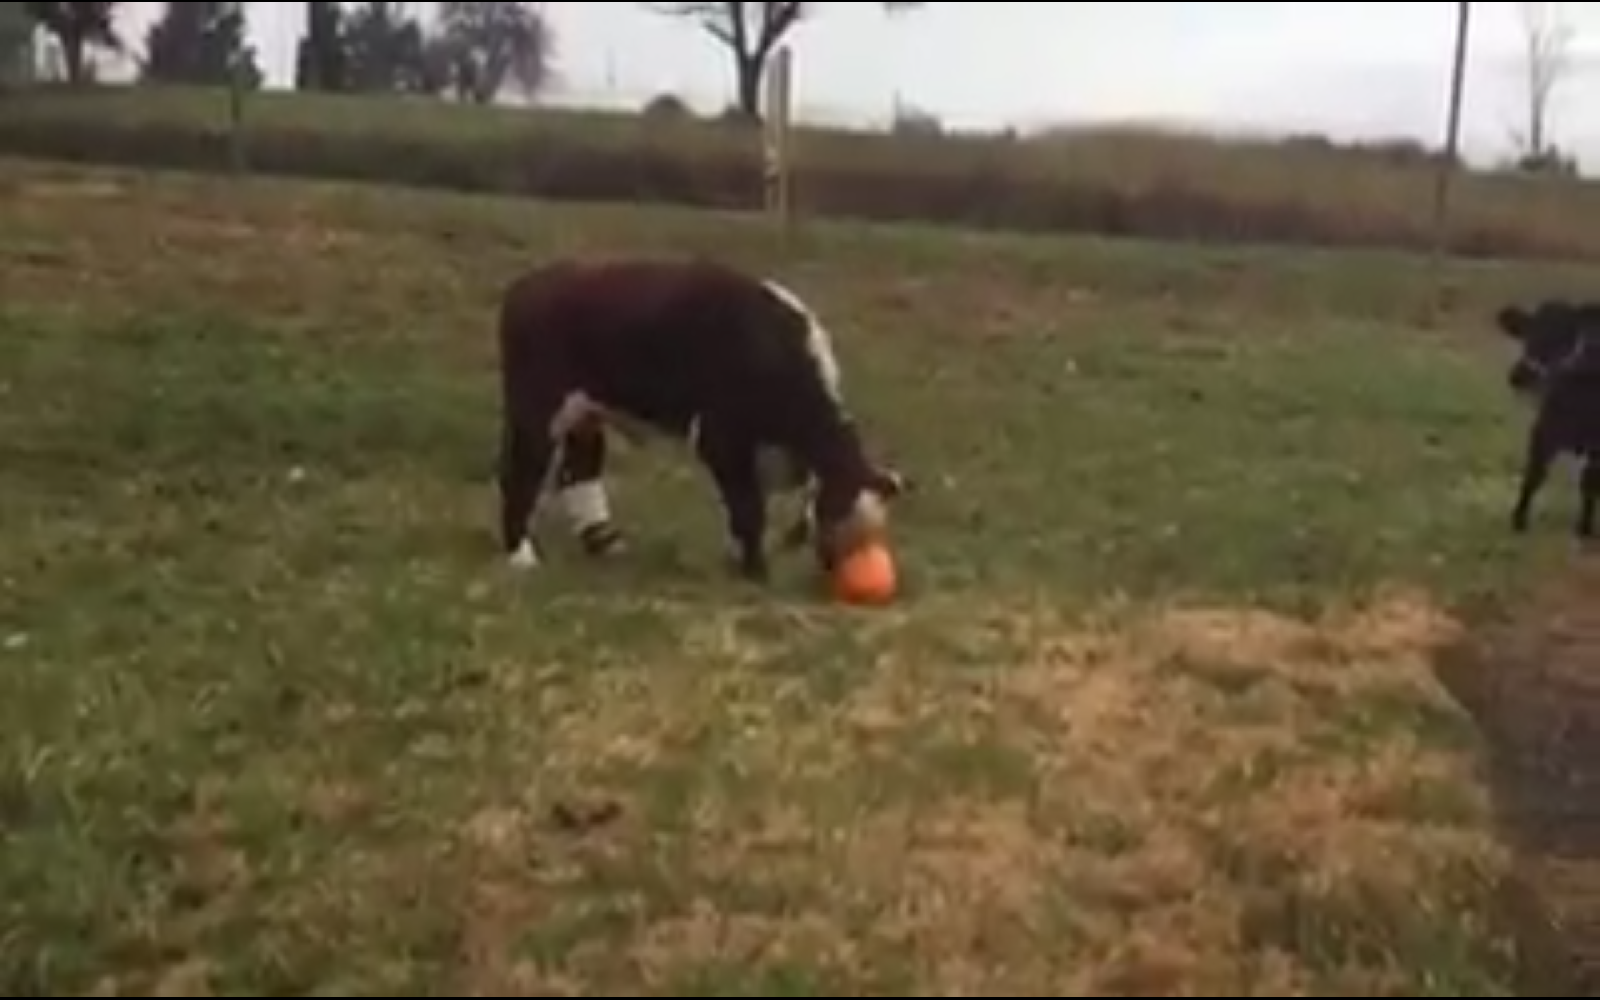 Adorable Video of Rescued Cows Playing With Pumpkins Shows